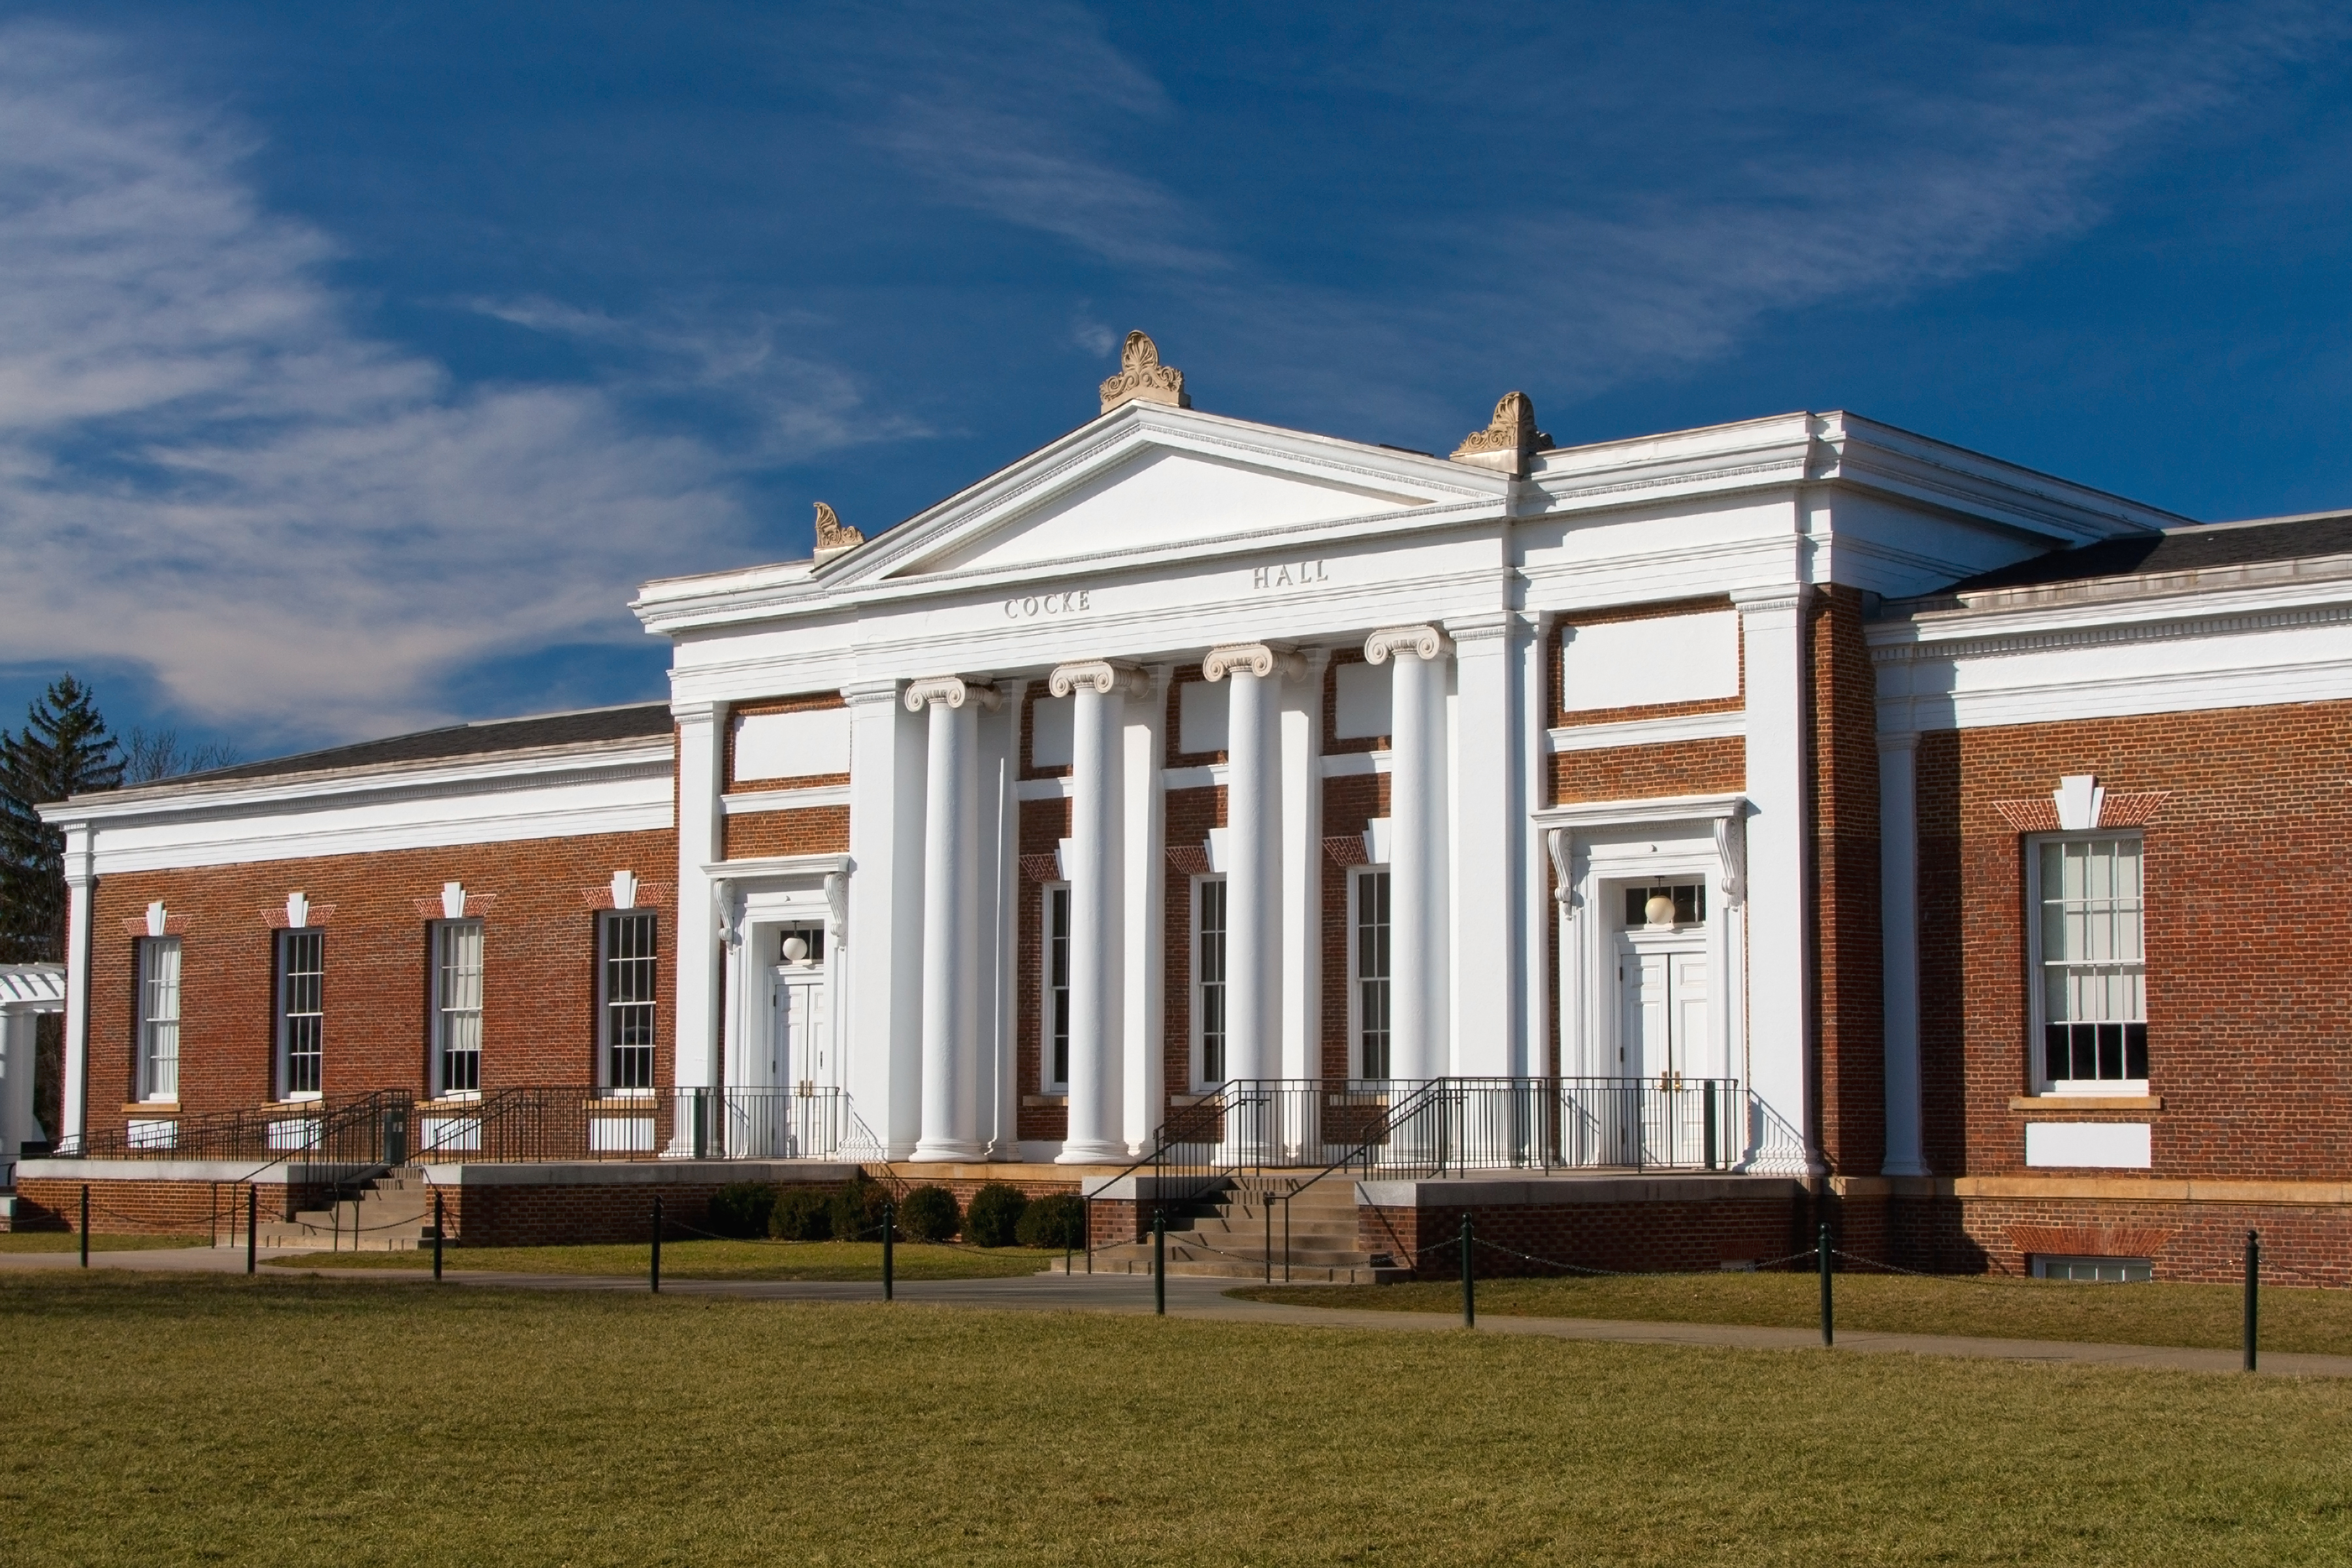 Rolling Stone Completes Investigation Of Faulty UVA Reporting, Writer Releases Official Statement